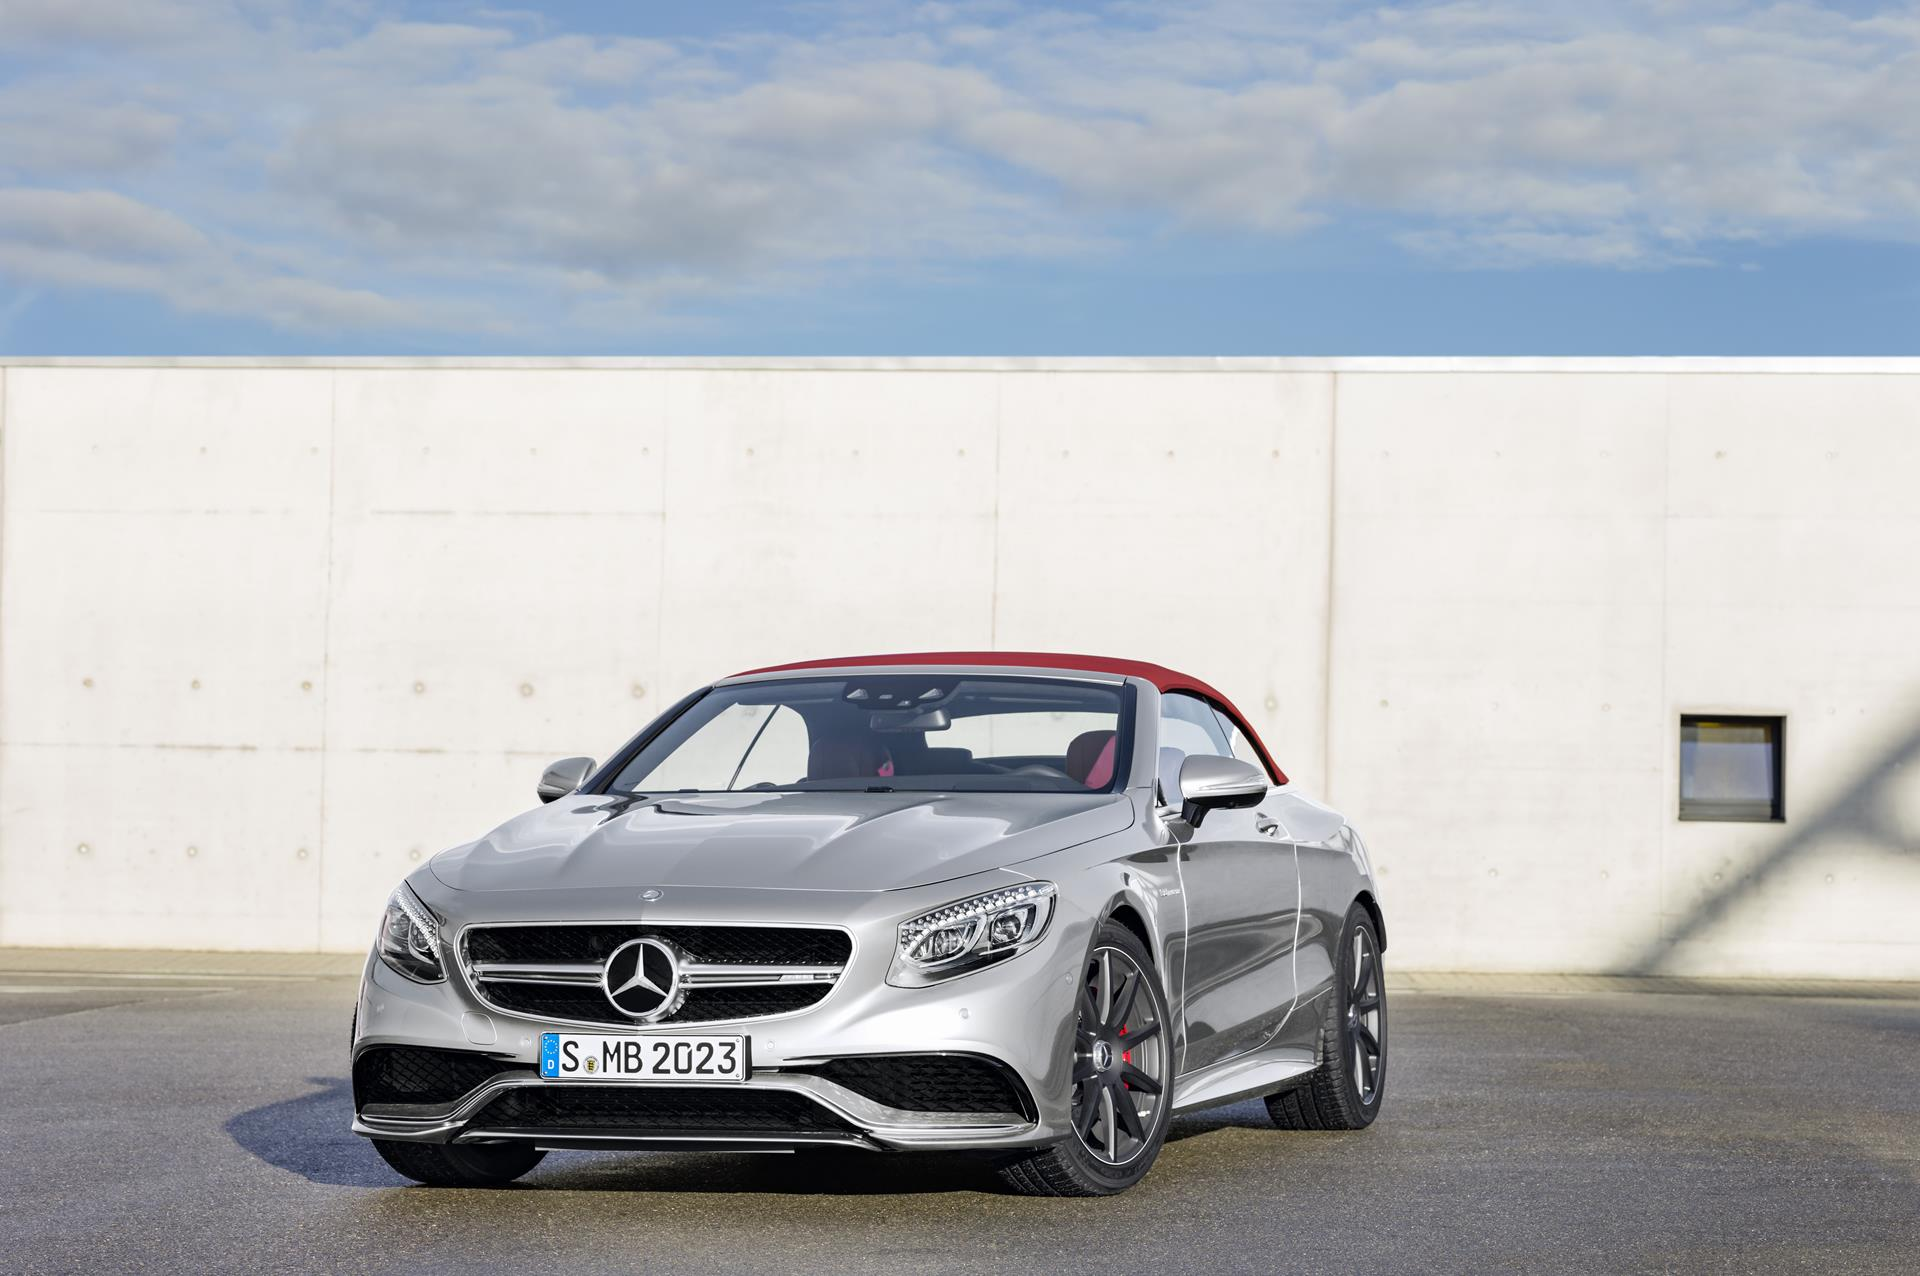 2016 Mercedes-Benz S63 AMG 4Matic Cabriolet Edition 130 News and ...